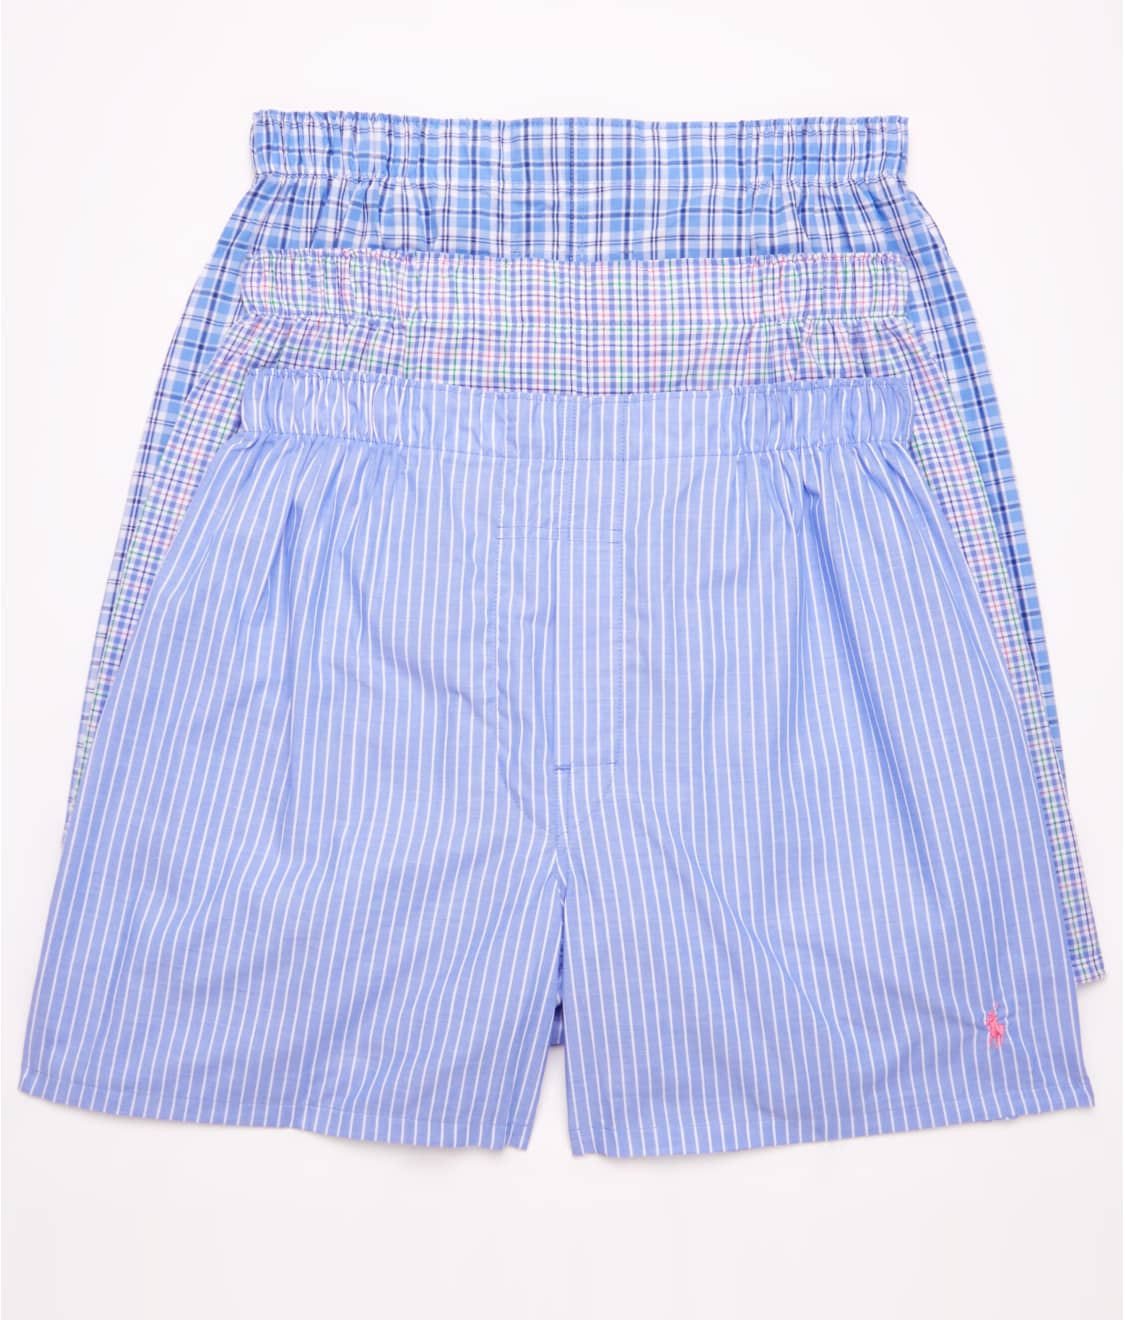 Polo Ralph Lauren Classic Woven Boxer 3 Pack Bare Necessities Lcwb